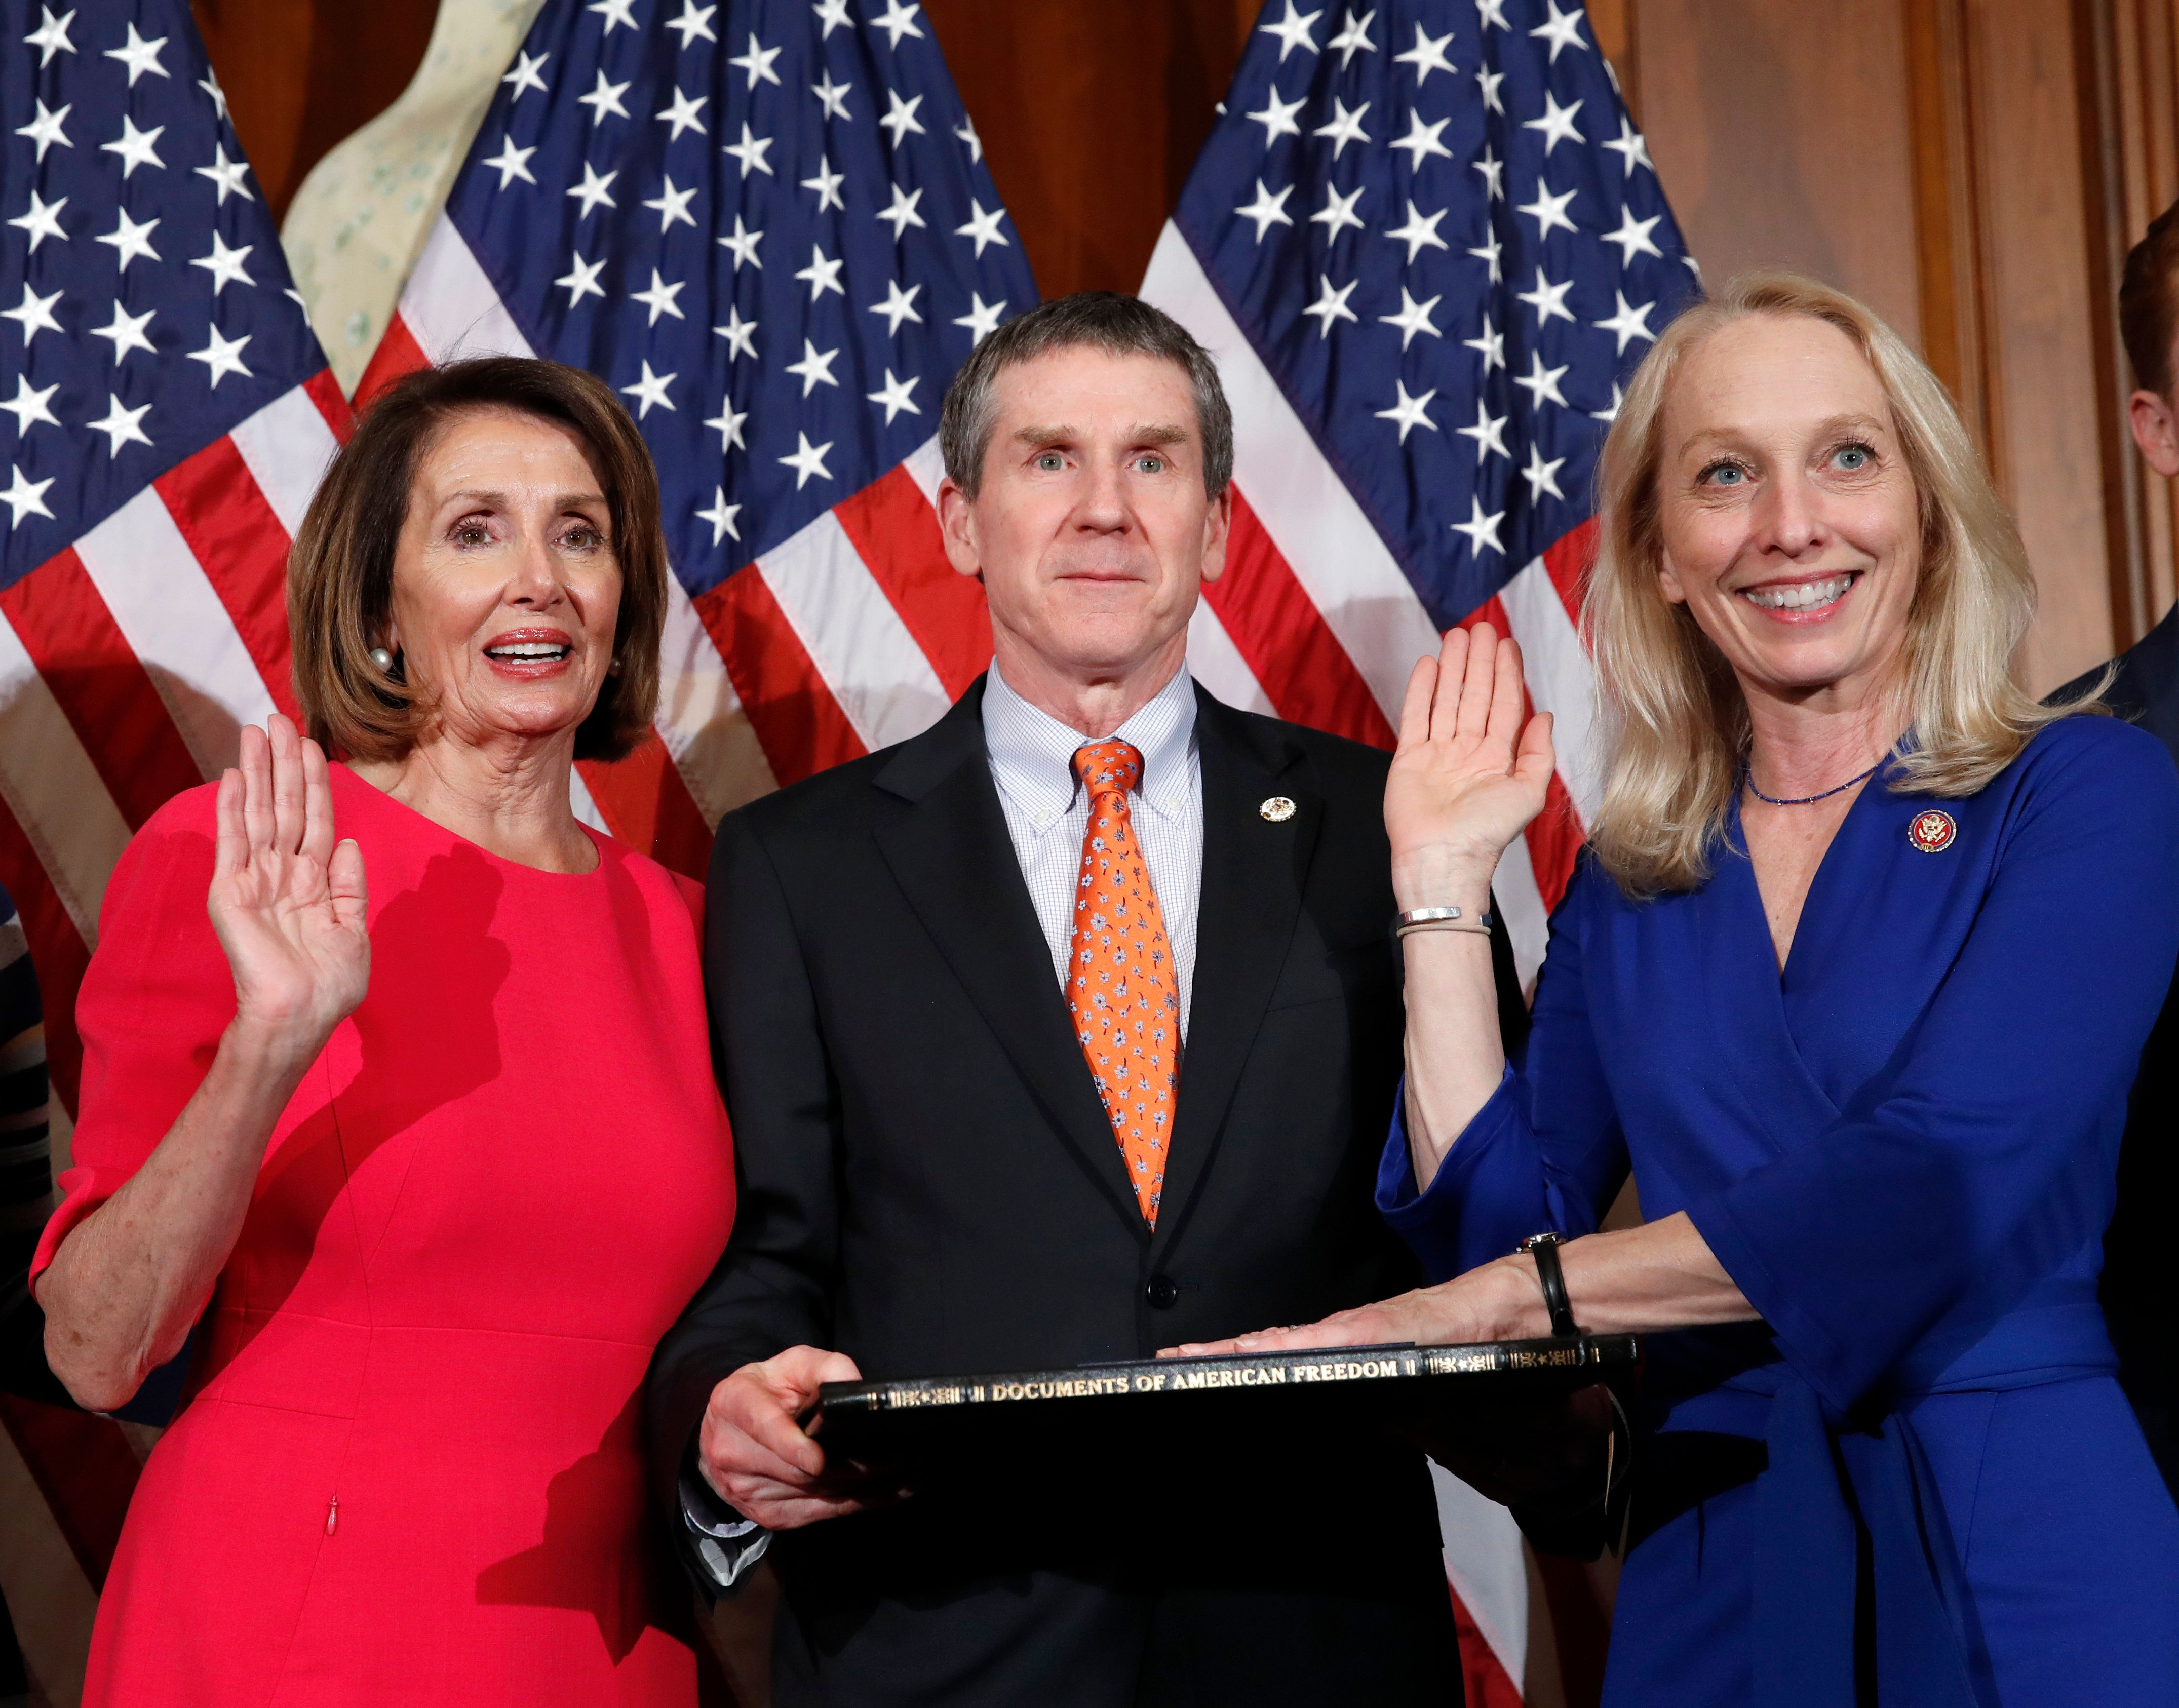 House Speaker Nancy Pelosi of Calif., left, poses during a ceremonial swearing-in with Rep. Mary Gay Scanlon, D-Pa., right, on Capitol Hill, Thursday, Jan. 3, 2019 in Washington, during the opening session of the 116th Congress. (AP Photo/Alex Brandon)